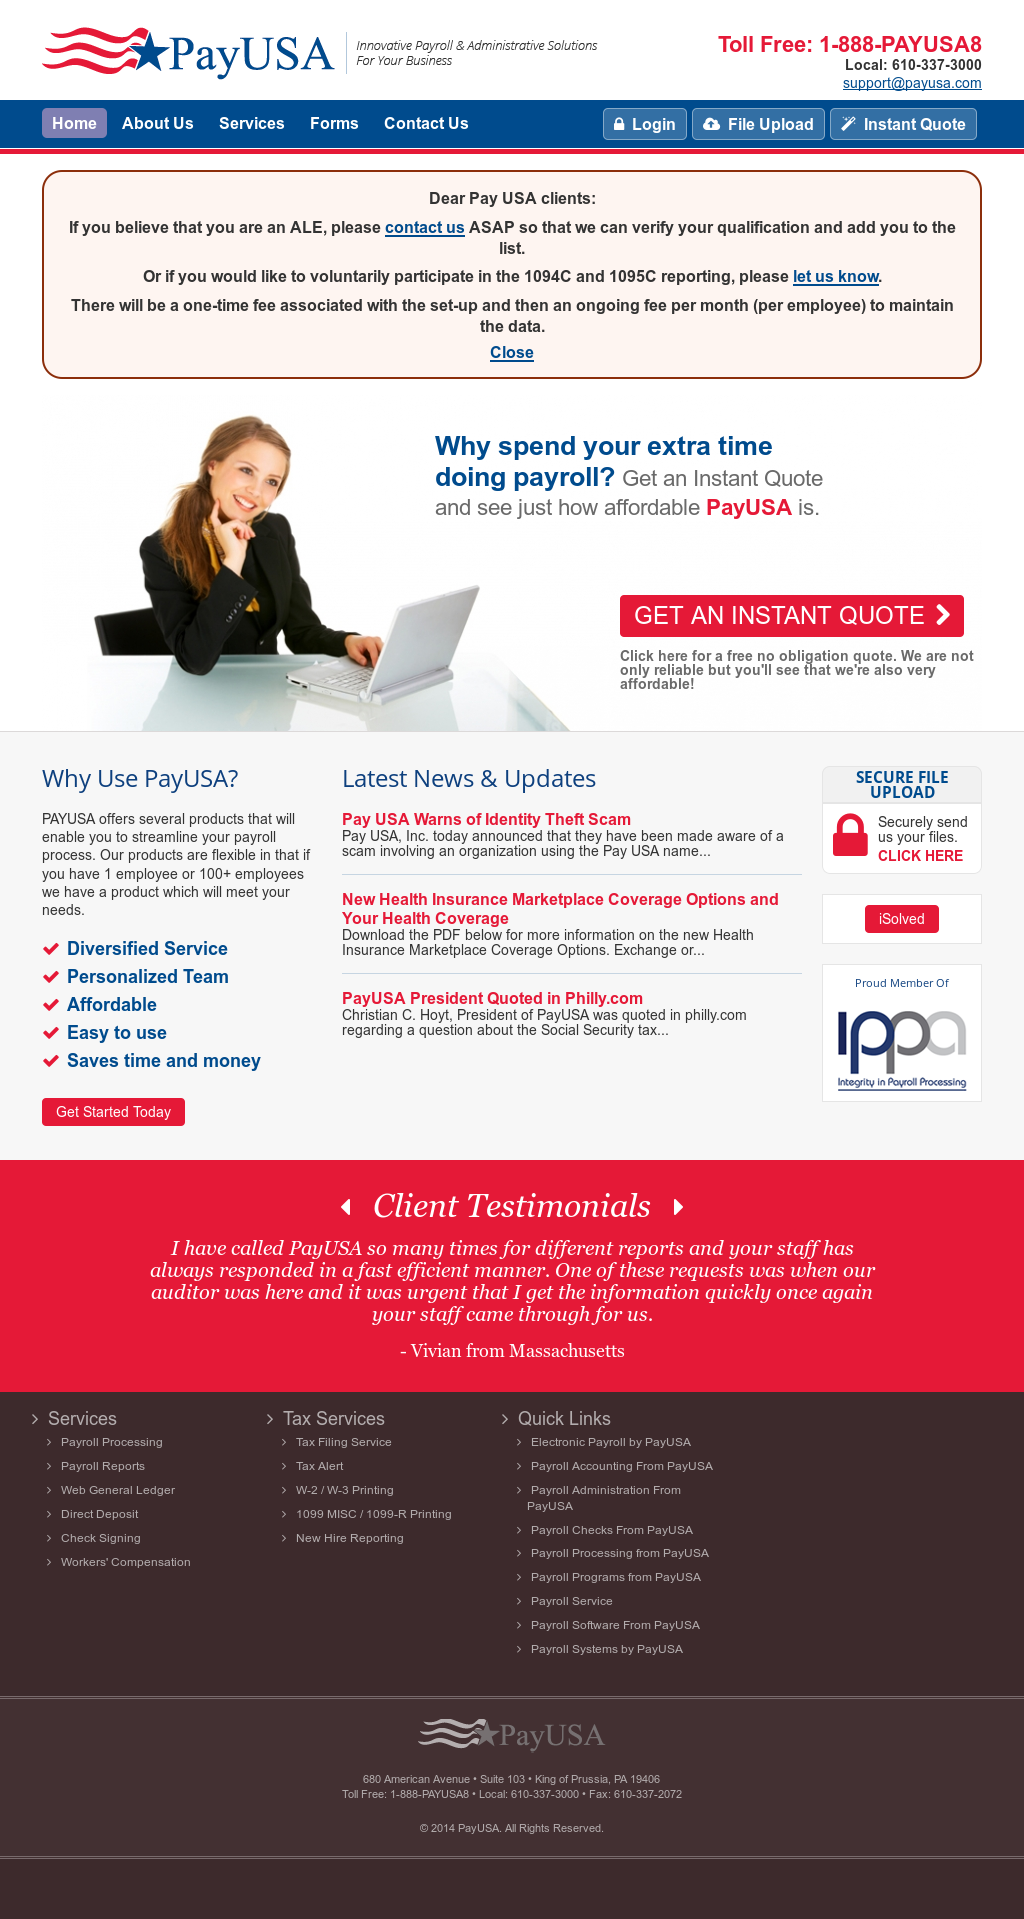 PayUsa Competitors, Revenue and Employees - Owler Company